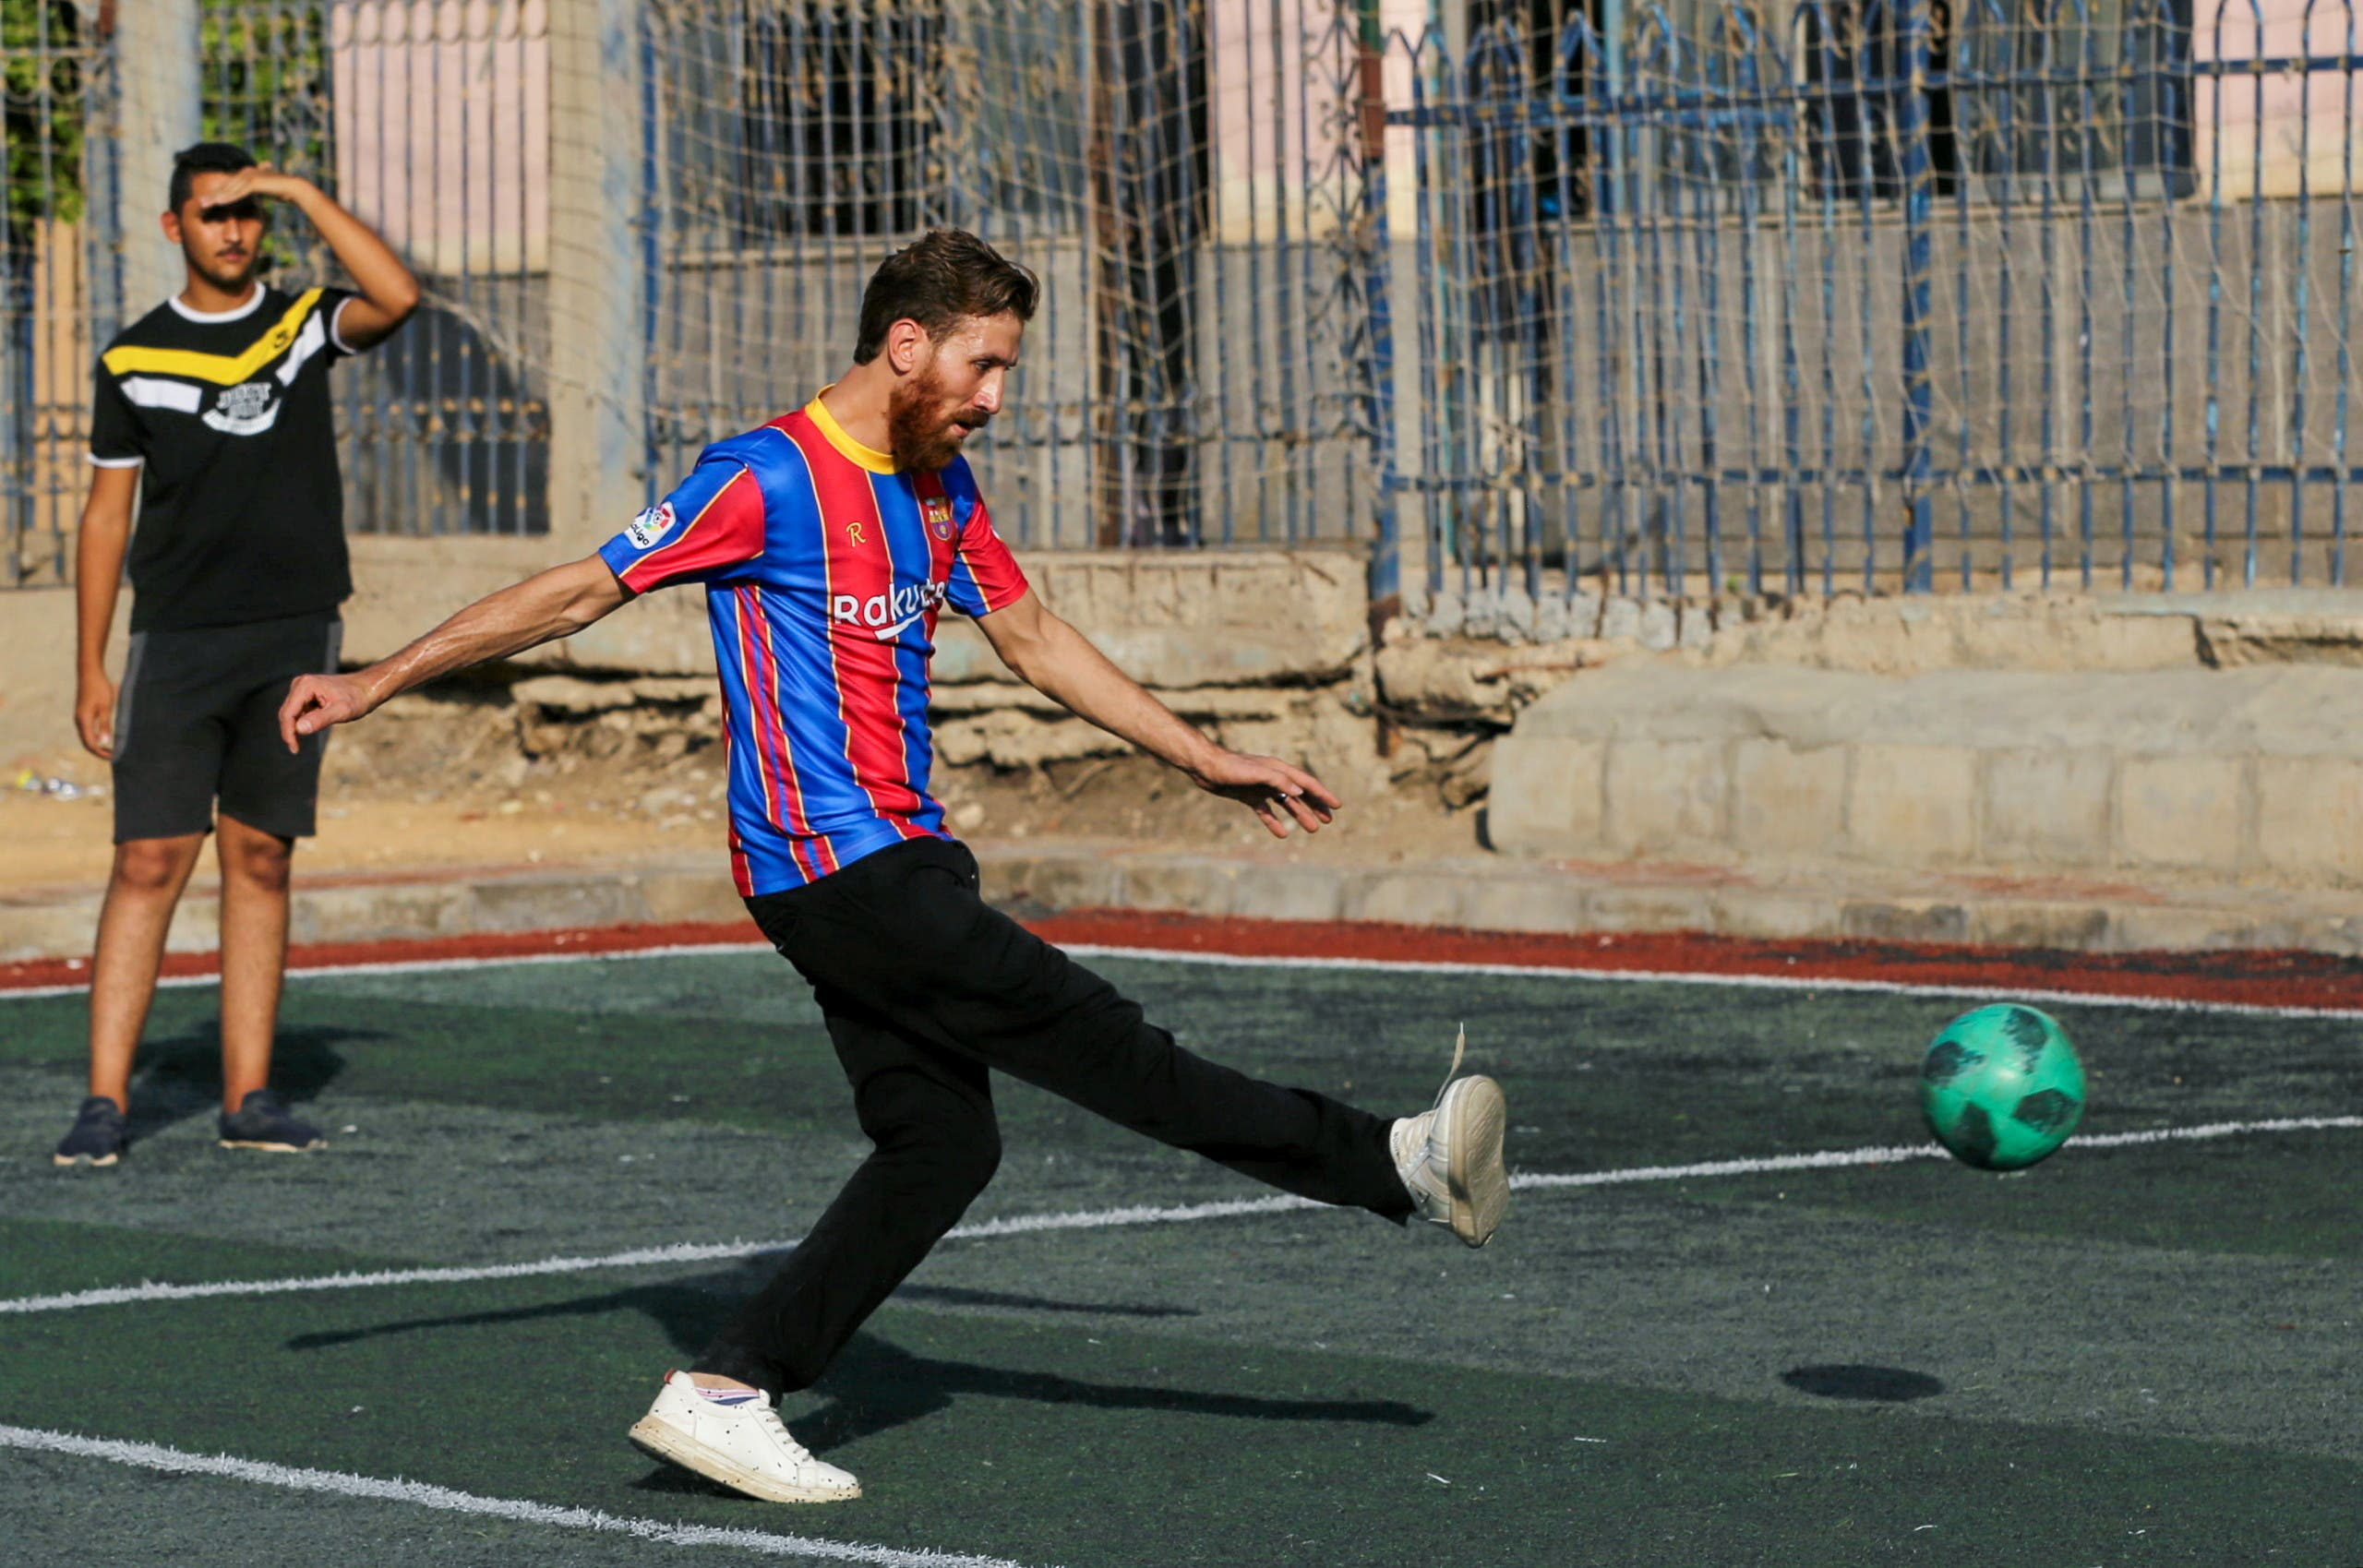 Islam Mohammed Ibrahim Battah, an Egyptian with a resemblance to Barcelona's forward Lionel Messi, attends a training in a club at Sharqia Governorate, north of Cairo, Egypt August 8, 2021. (Reuters)